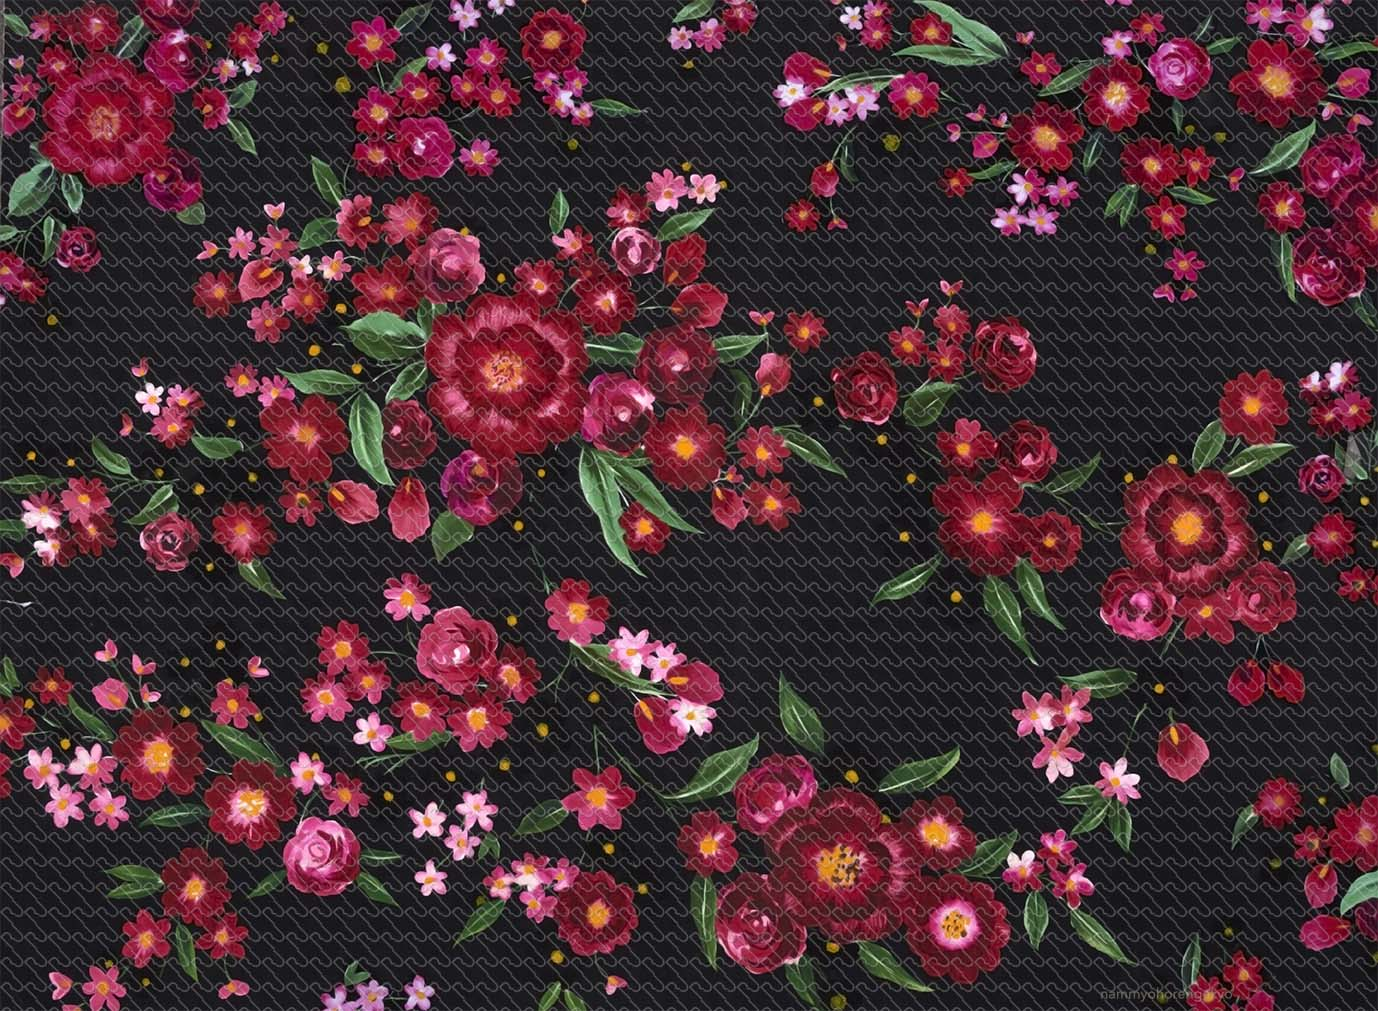 Brushed Red Flowers And Roses With Black Background 1519 Ru Digital